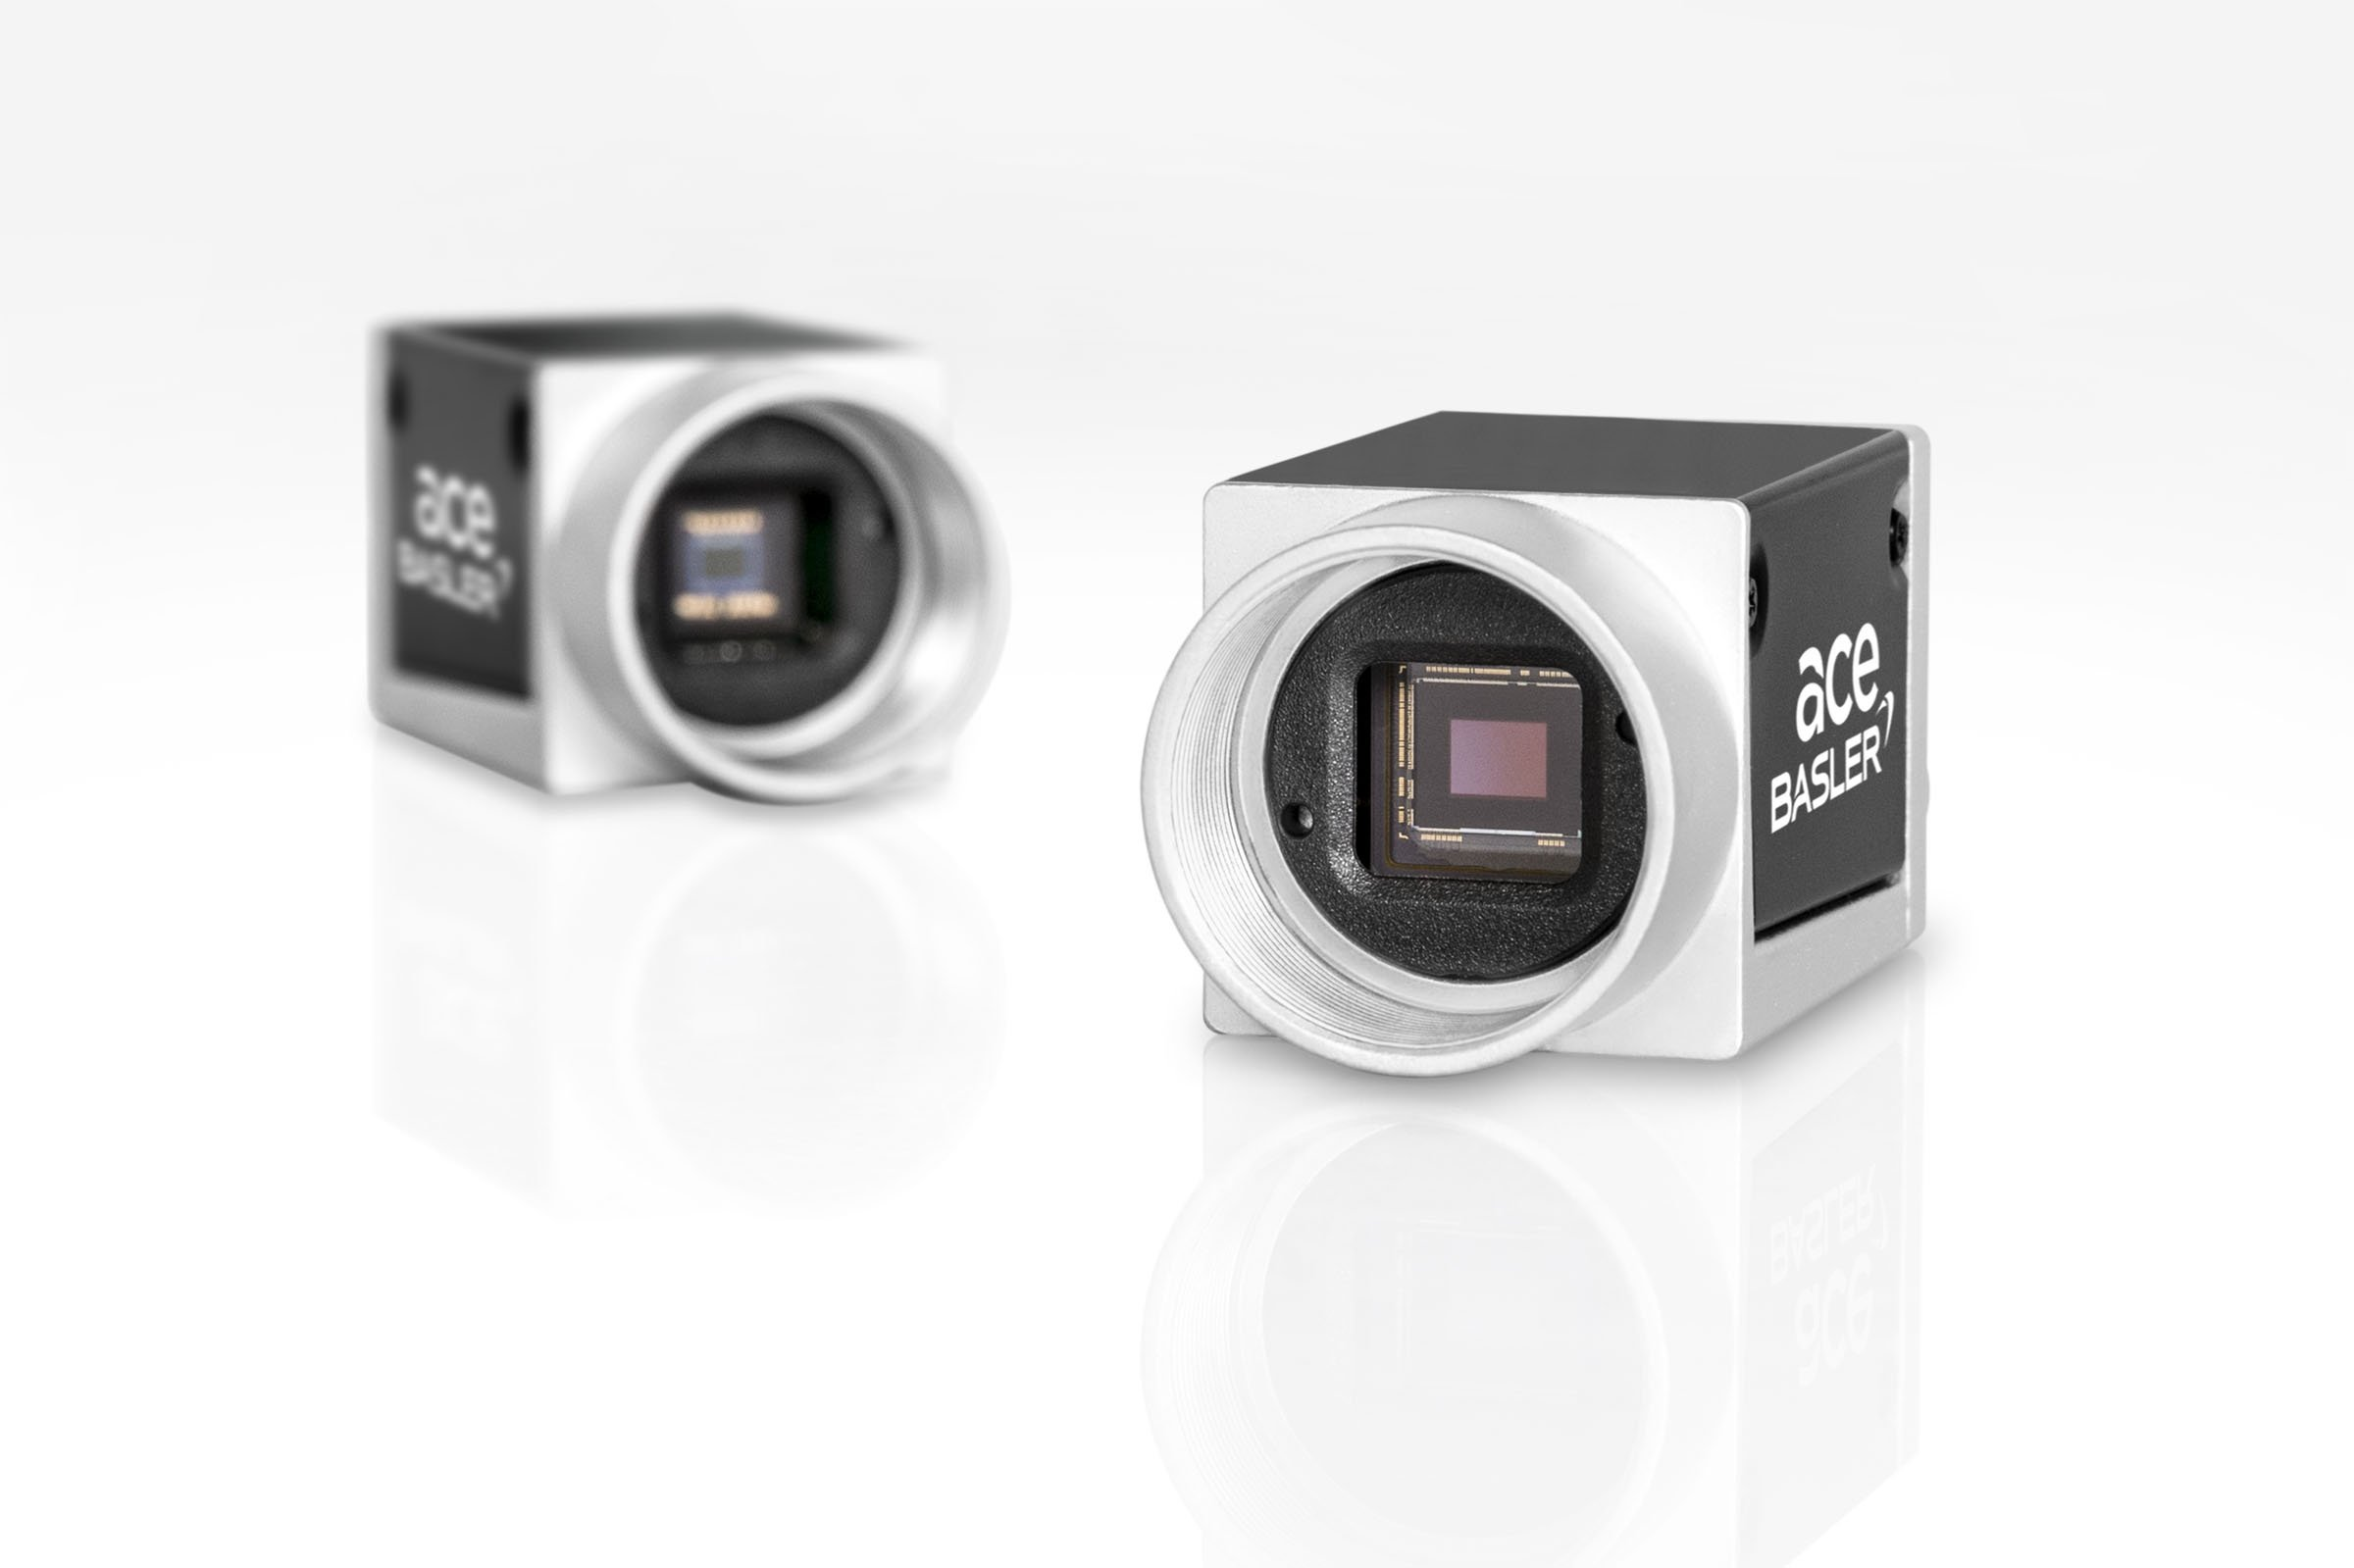 CCD Cameras Market 2020 Trends, Market Share, Industry Size, Growth, Sales, Opportunities, Analysis and Forecast To 2026